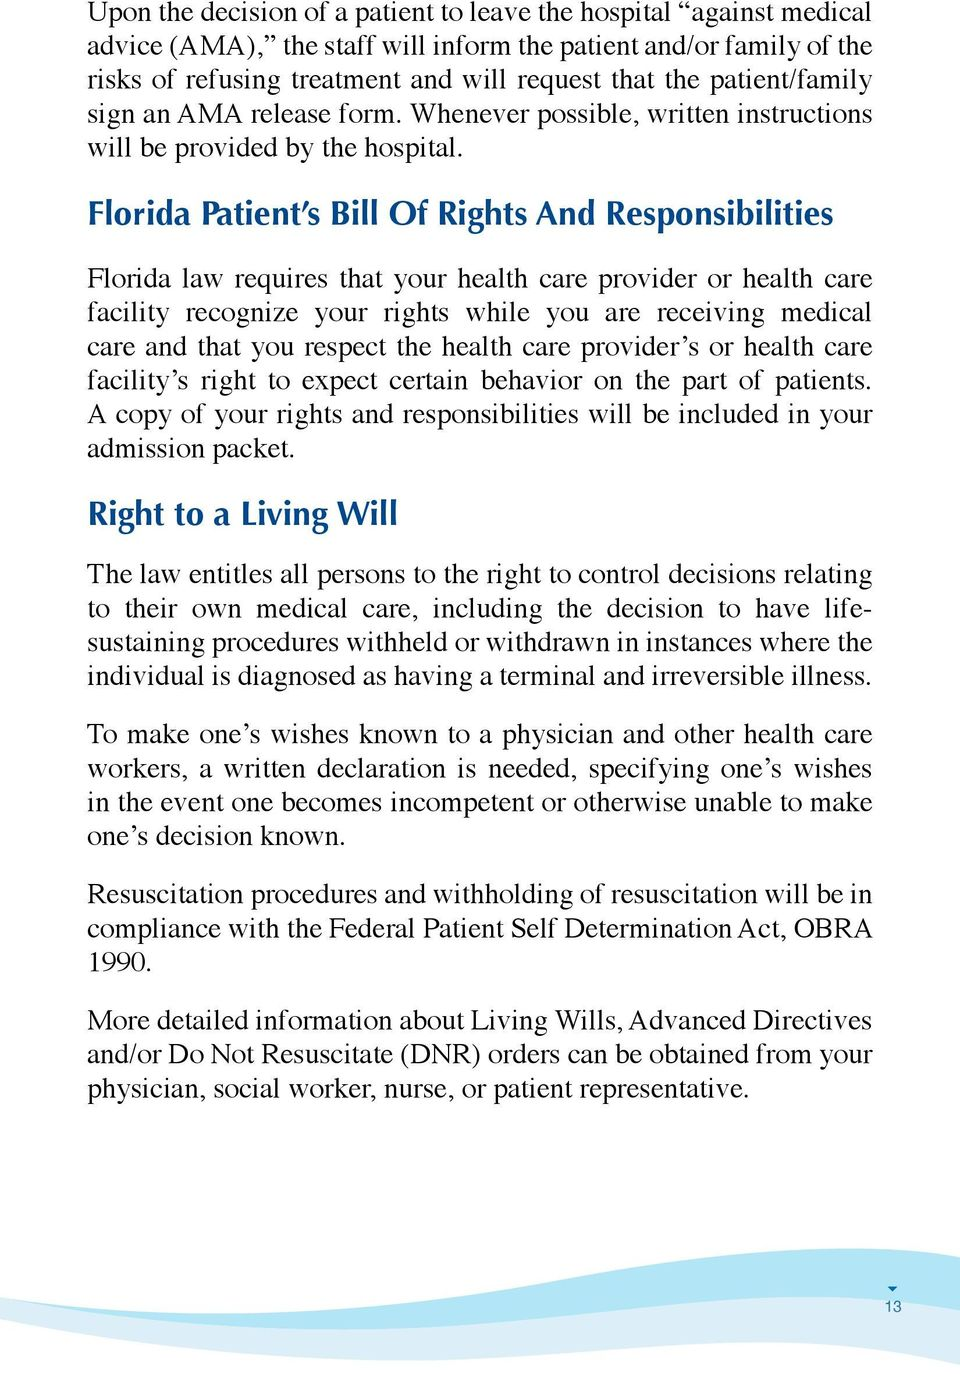 Florida Patient s Bill Of Rights And Responsibilities Florida law requires that your health care provider or health care facility recognize your rights while you are receiving medical care and that